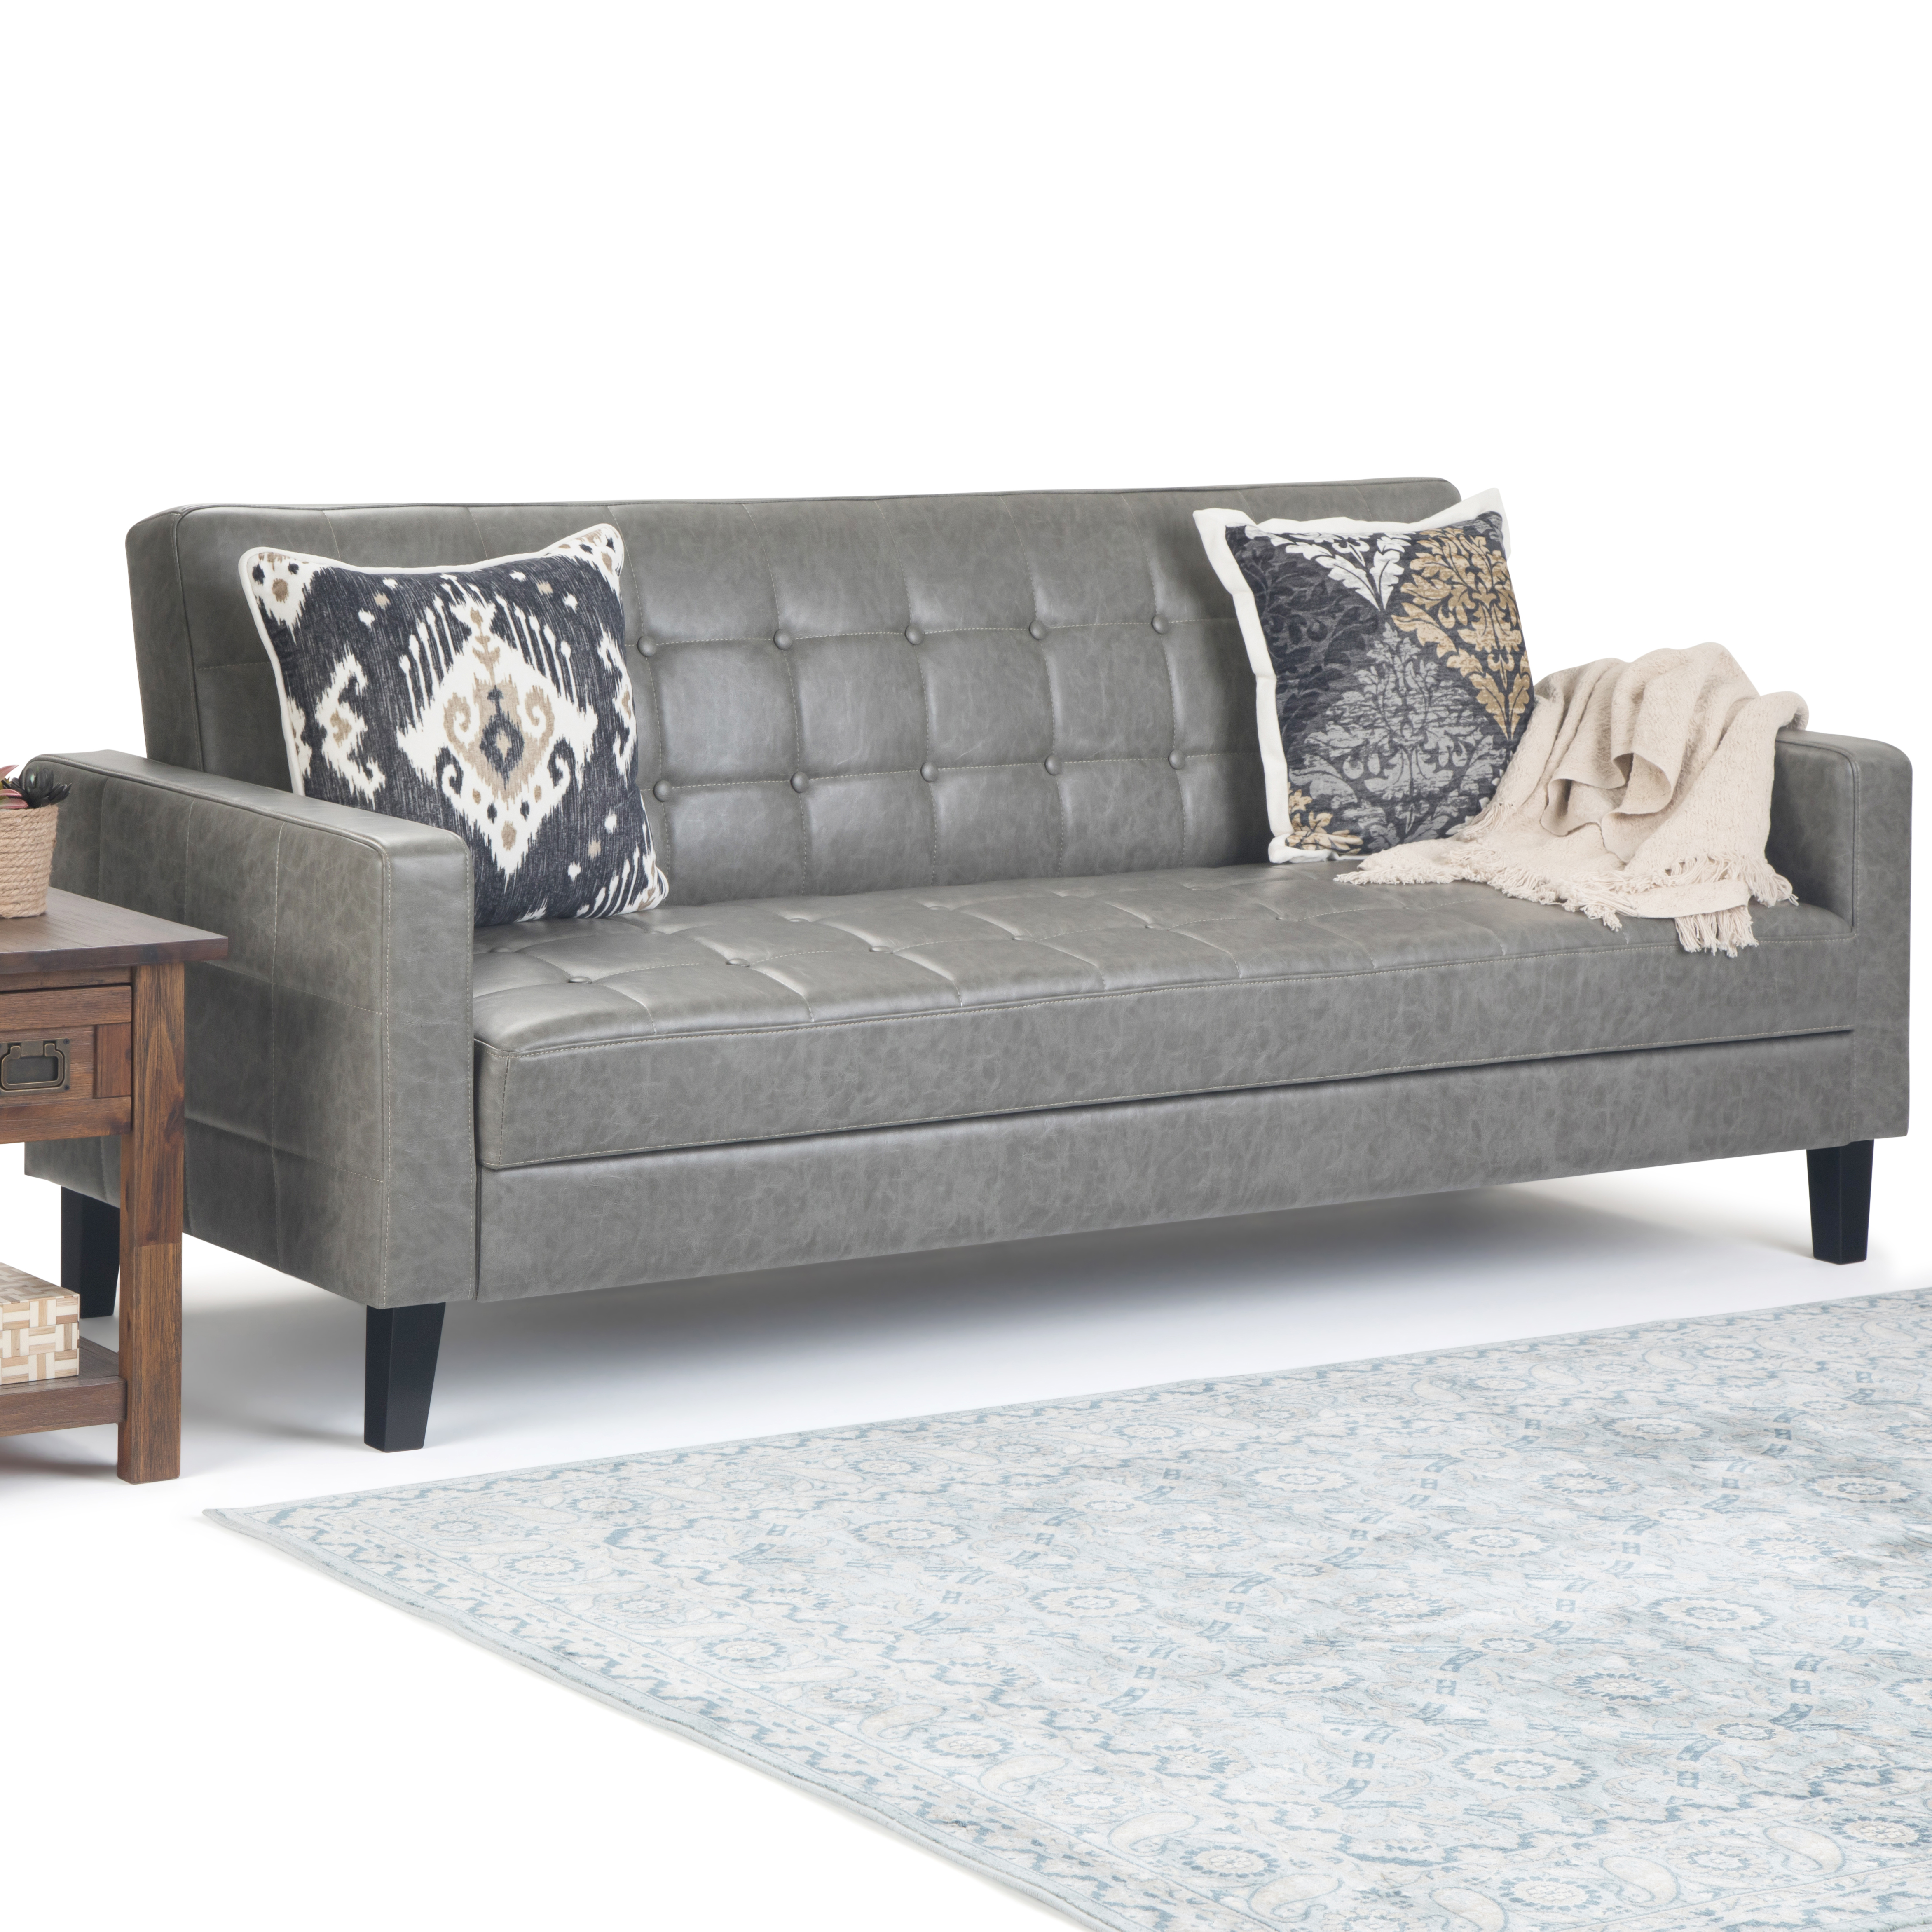 Brooklyn Max Gatwick Click Clack Sofa Bed With Lift Up Seat